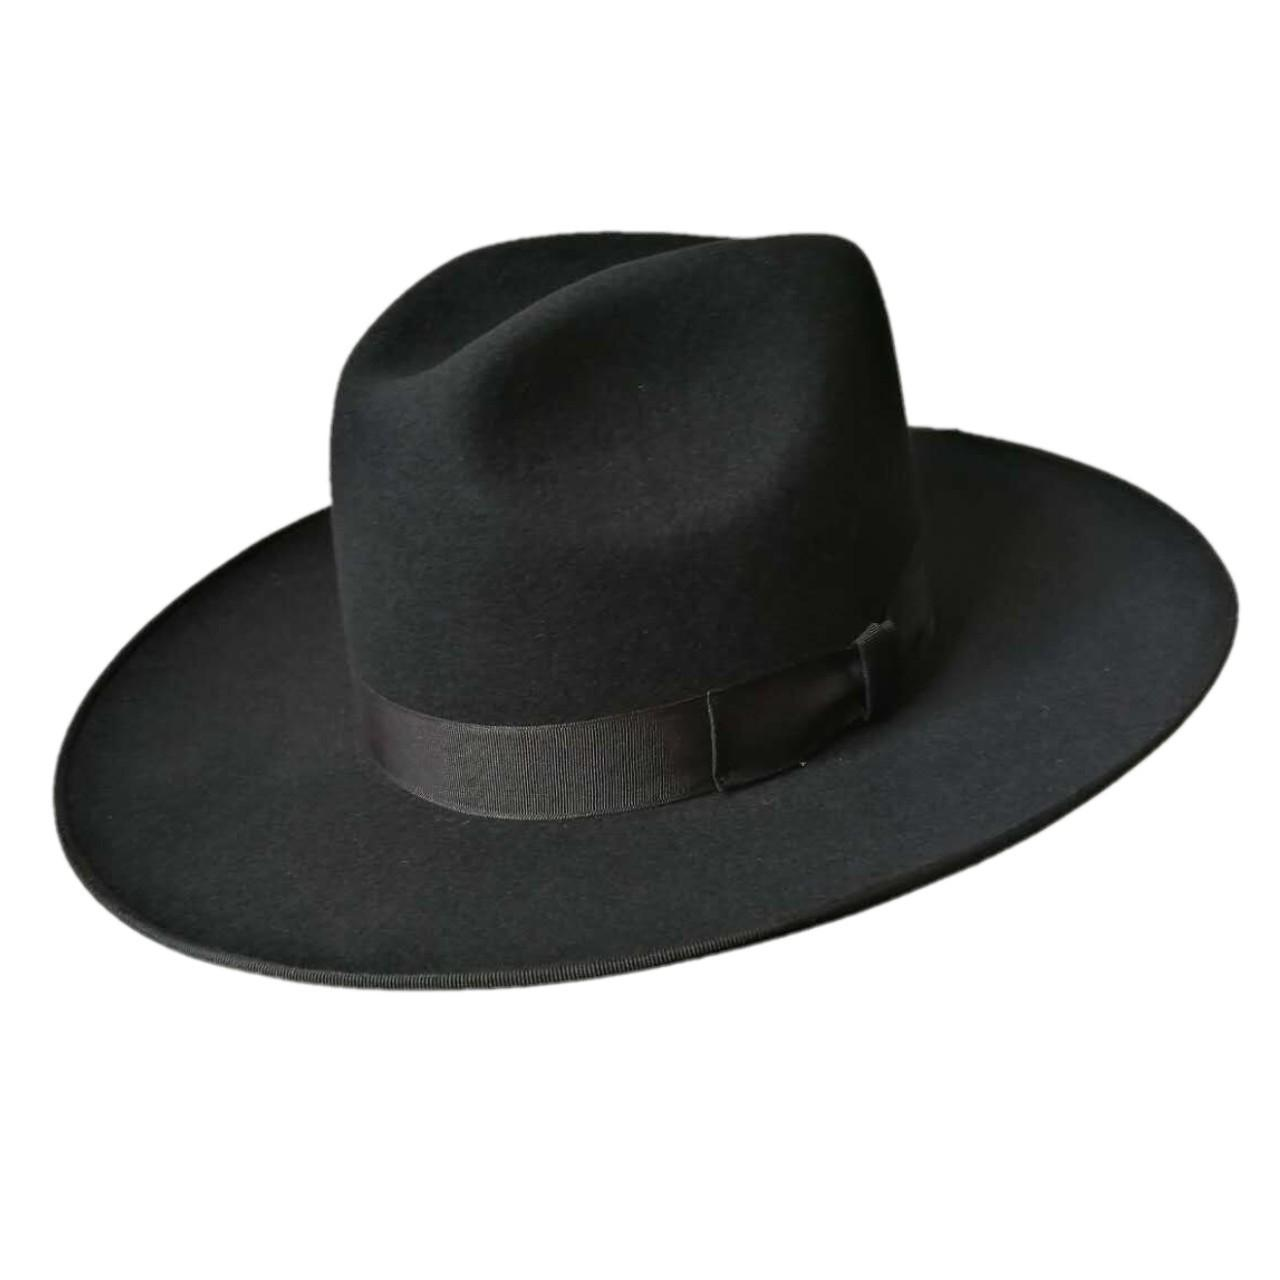 Cheap Men's felt hats Rabbit fur felt Jewish hat, jewish hat borsalino, Israel, Top Hat for sale